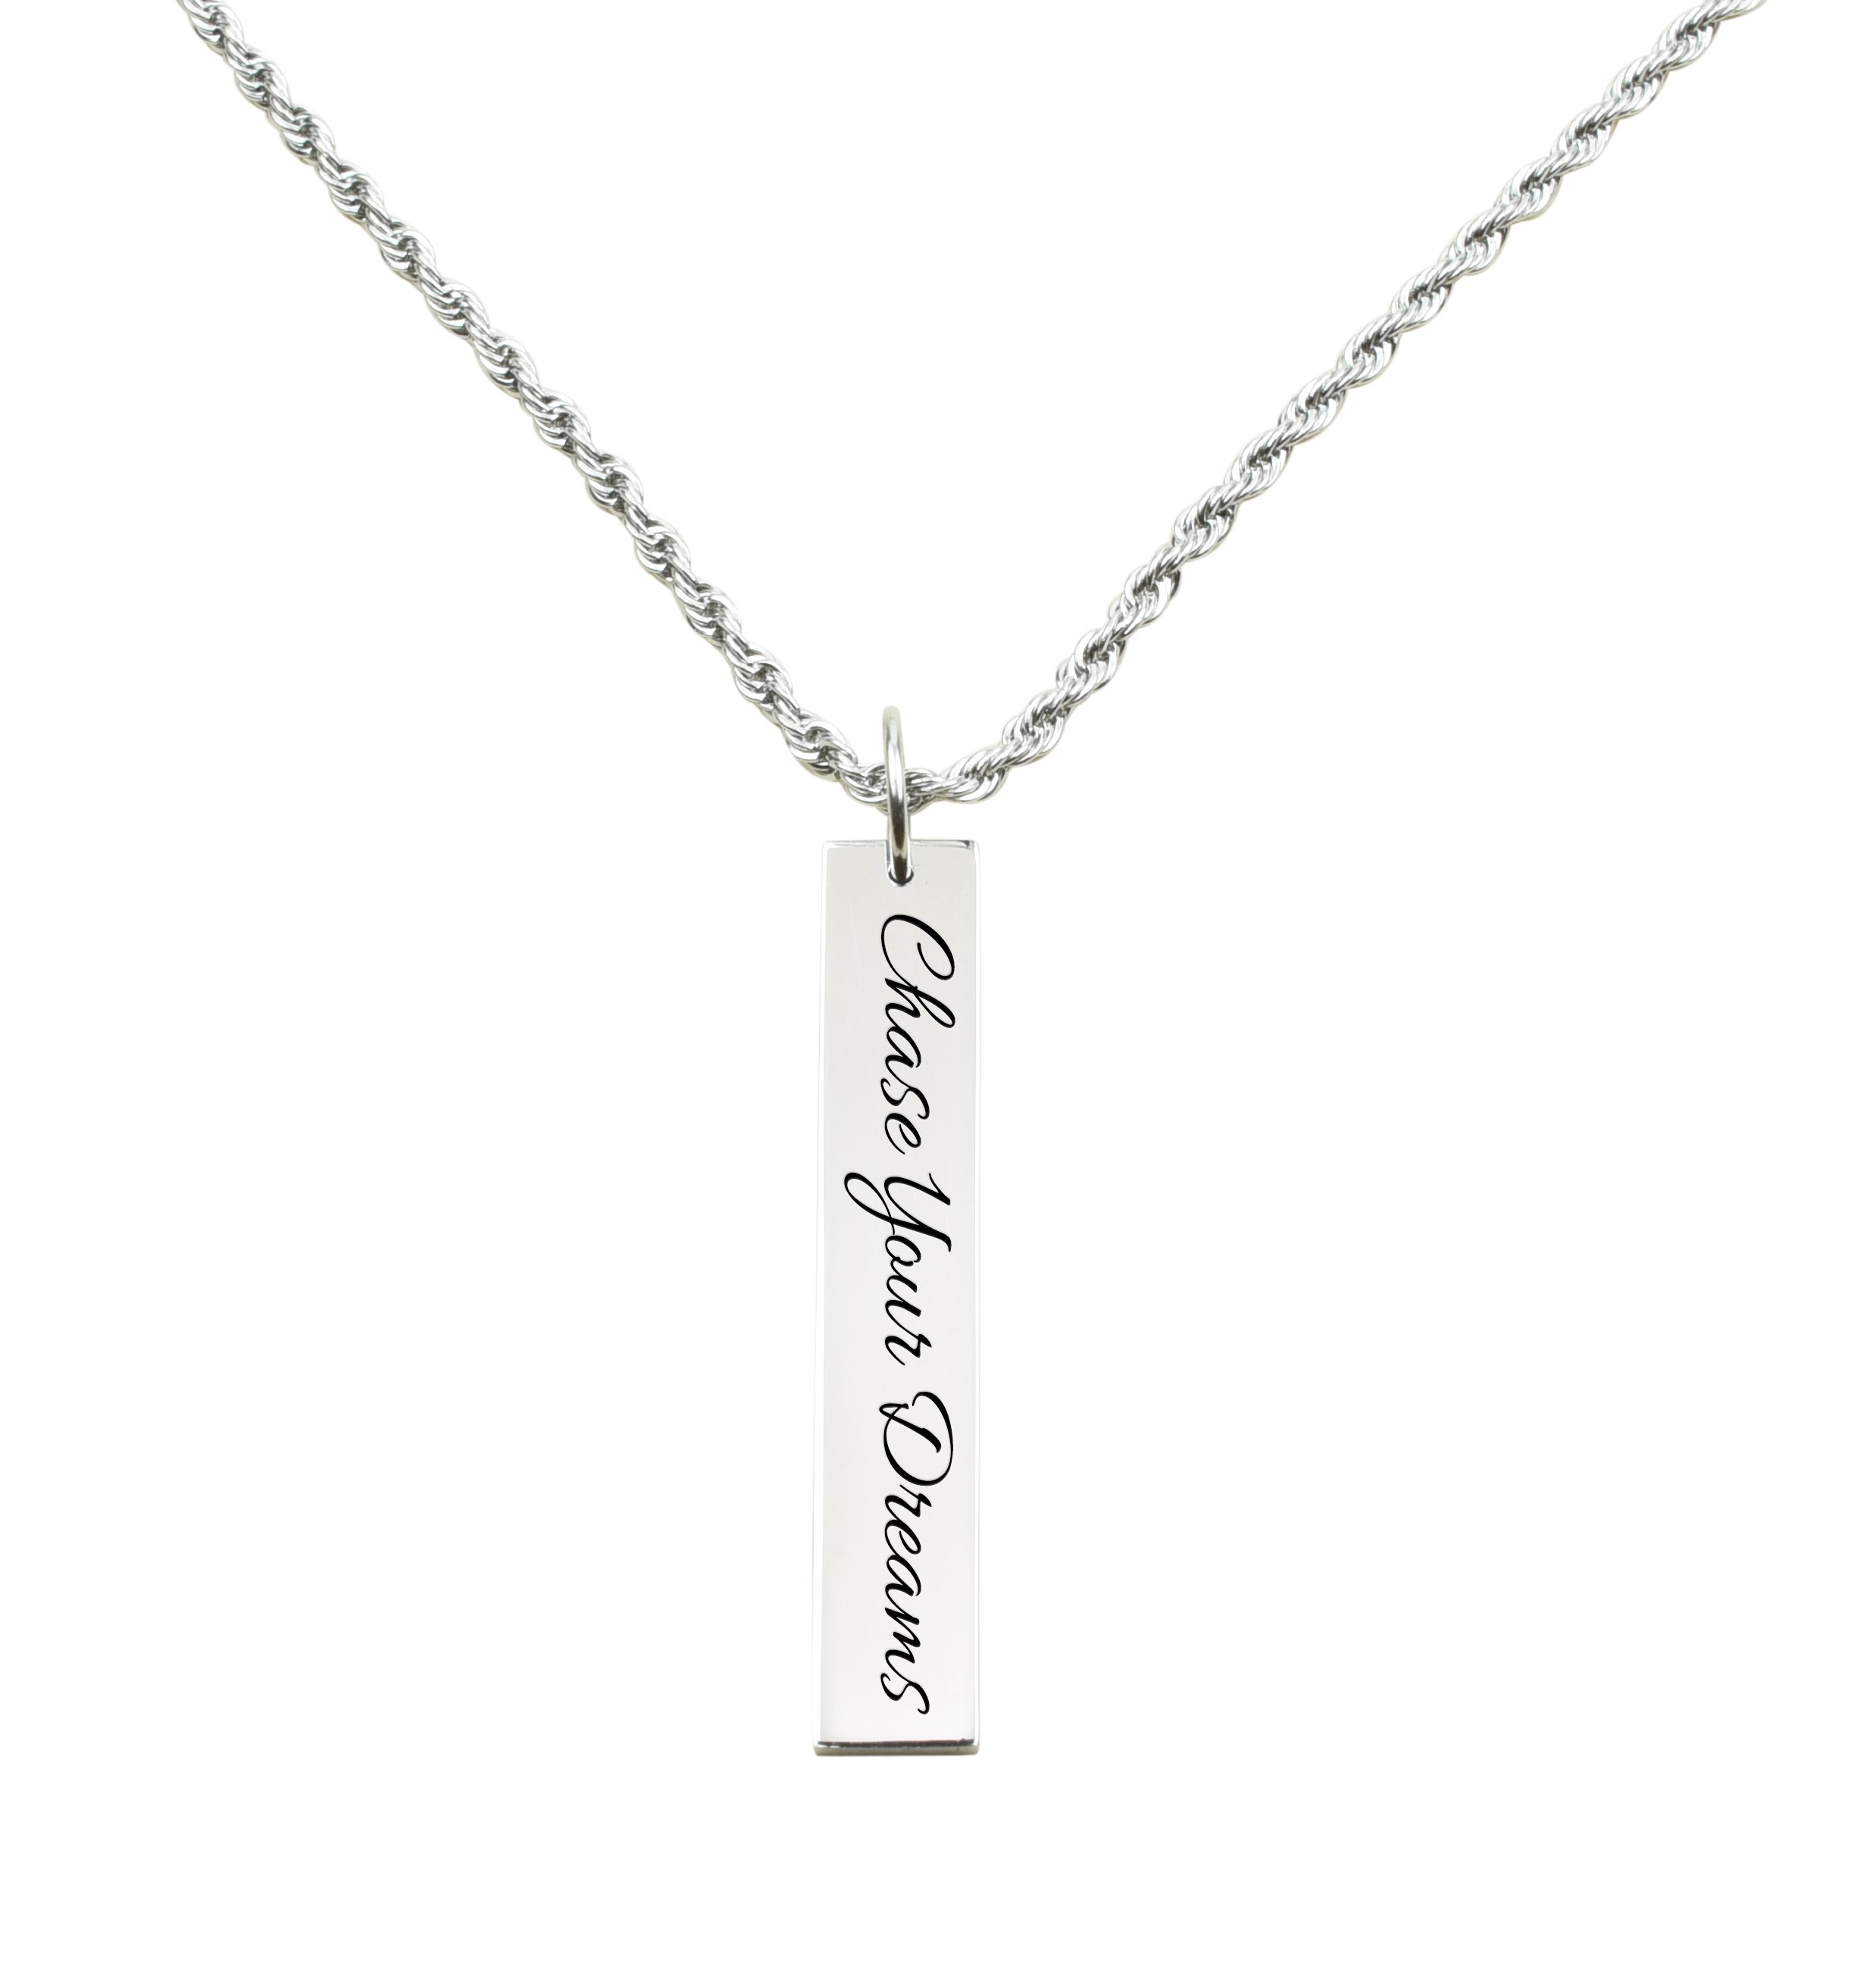 Thankful Silver Pink Box Vertical Bar Inspirational Necklace